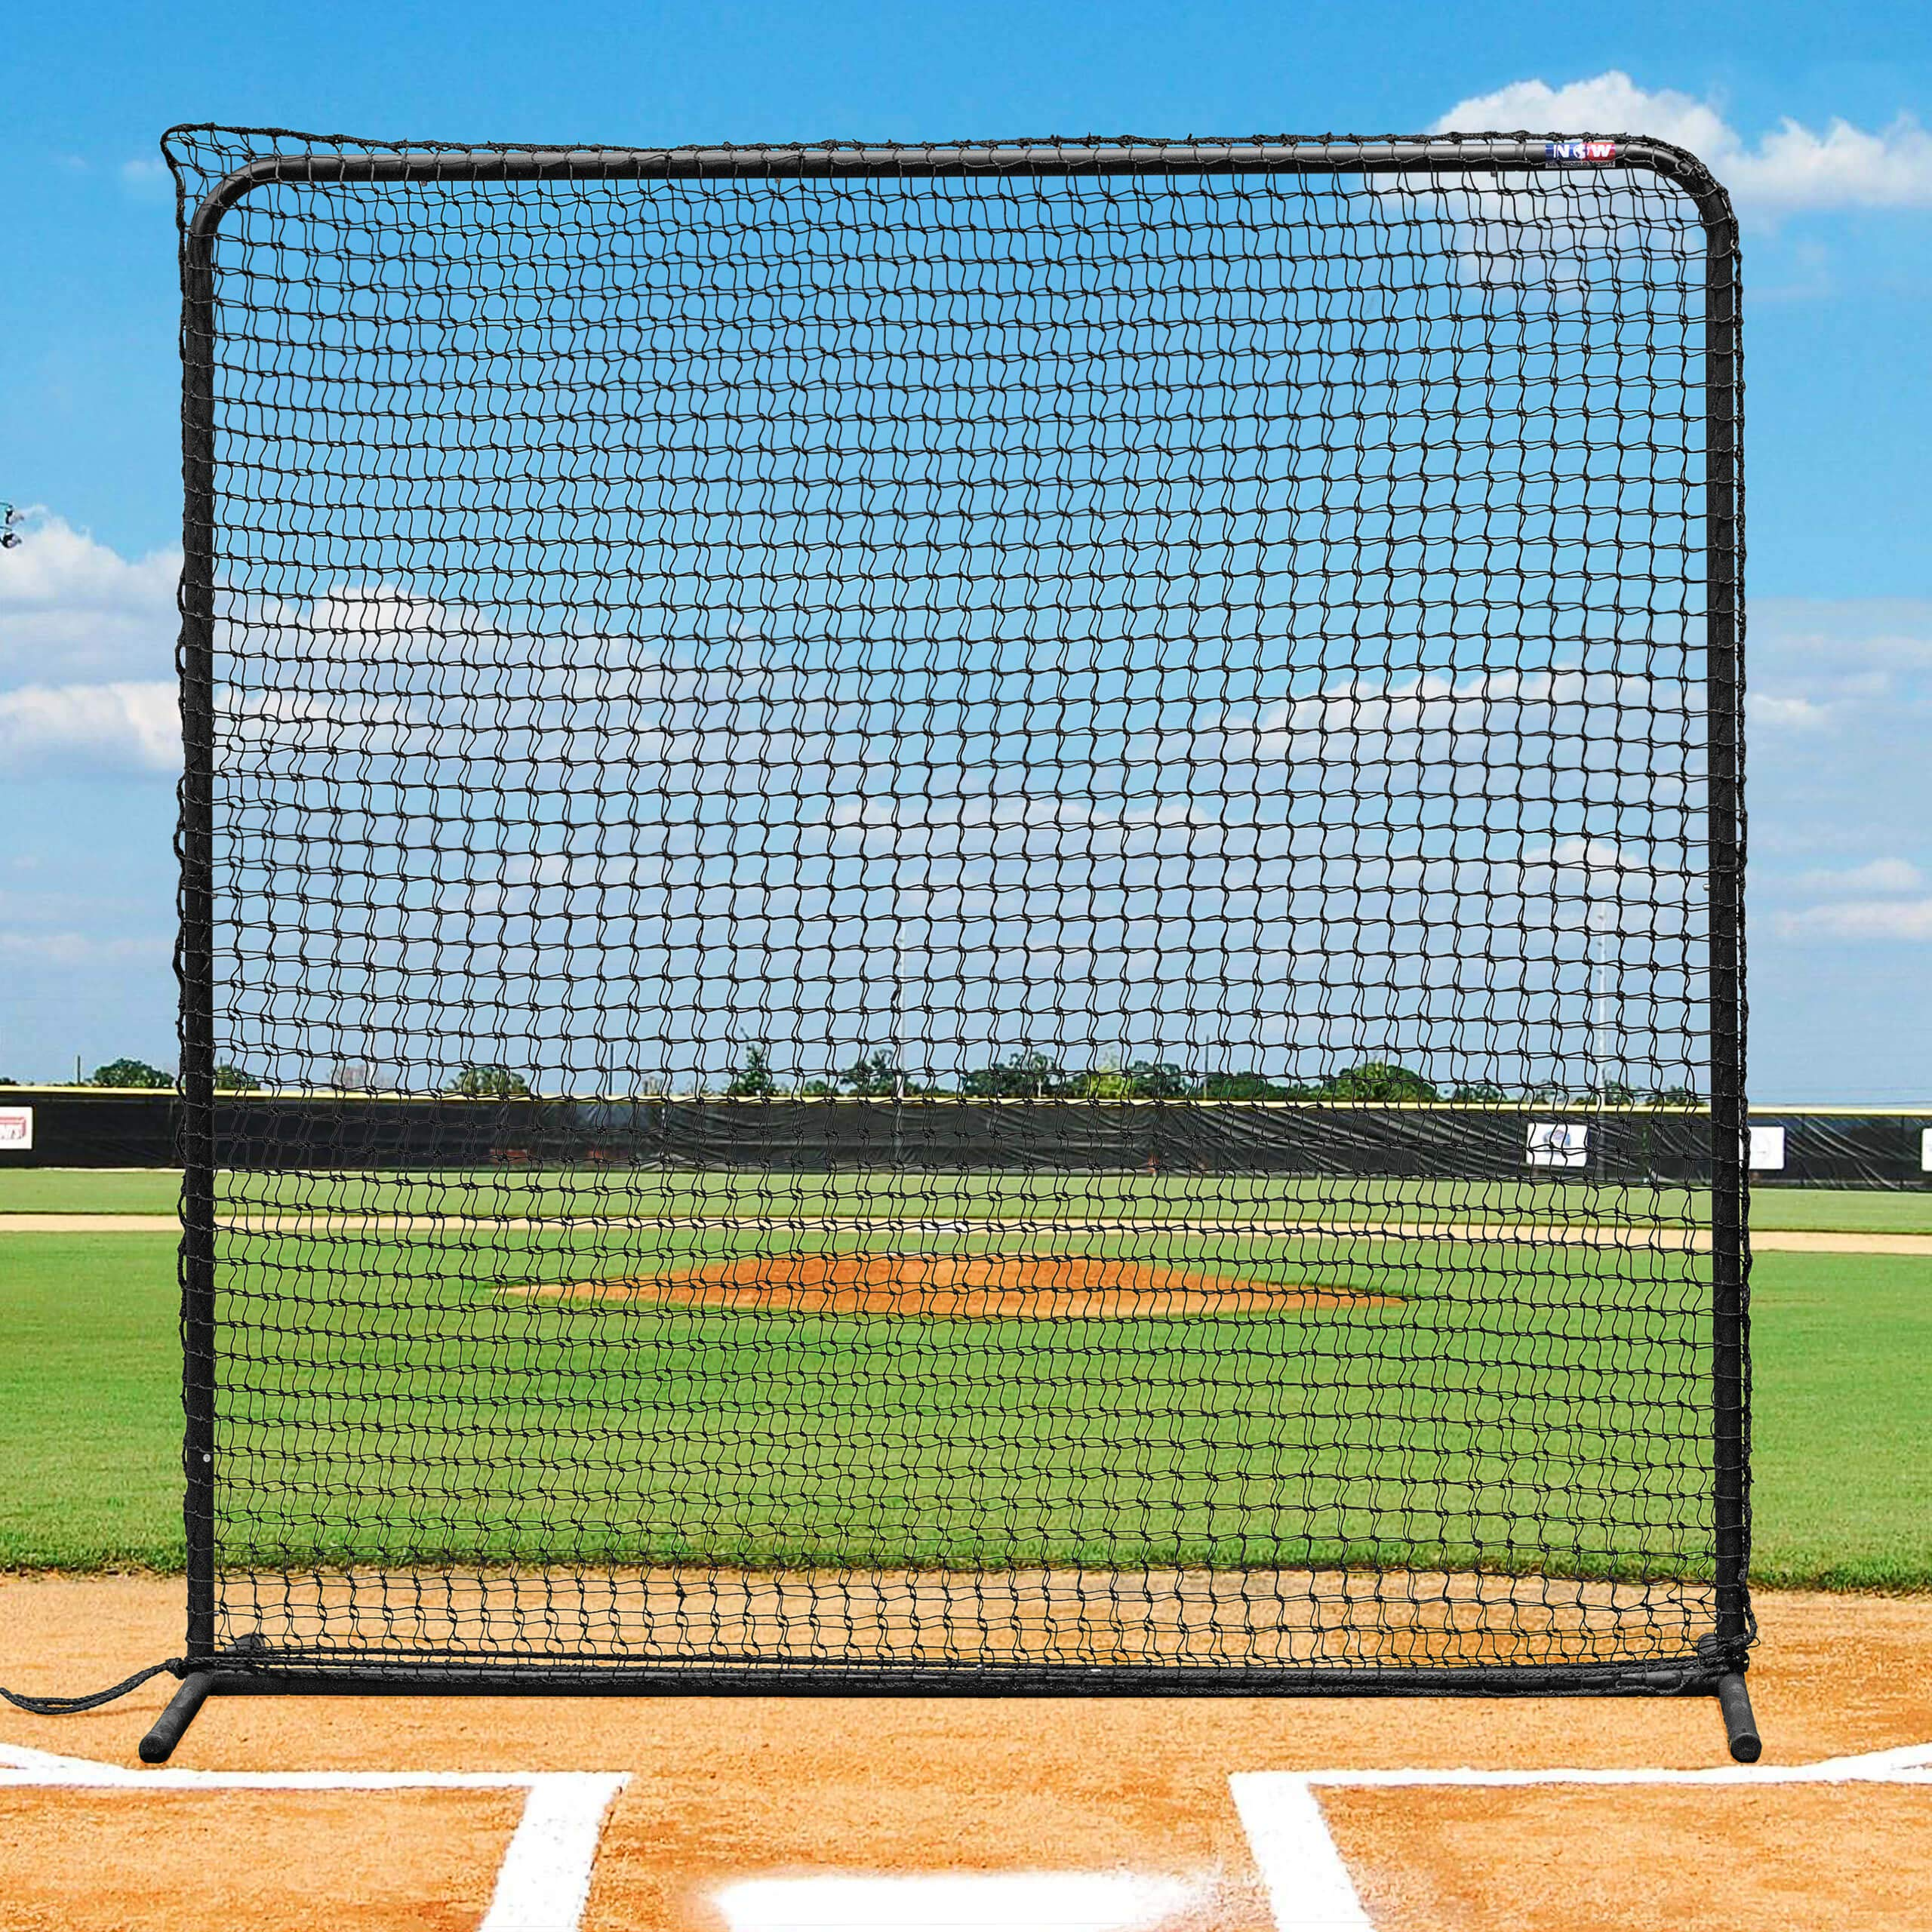 Fortress Baseball Protective Screen - 7ft x 7ft Premium Quality Baseball and Softball Protector Net Screen by Fortress